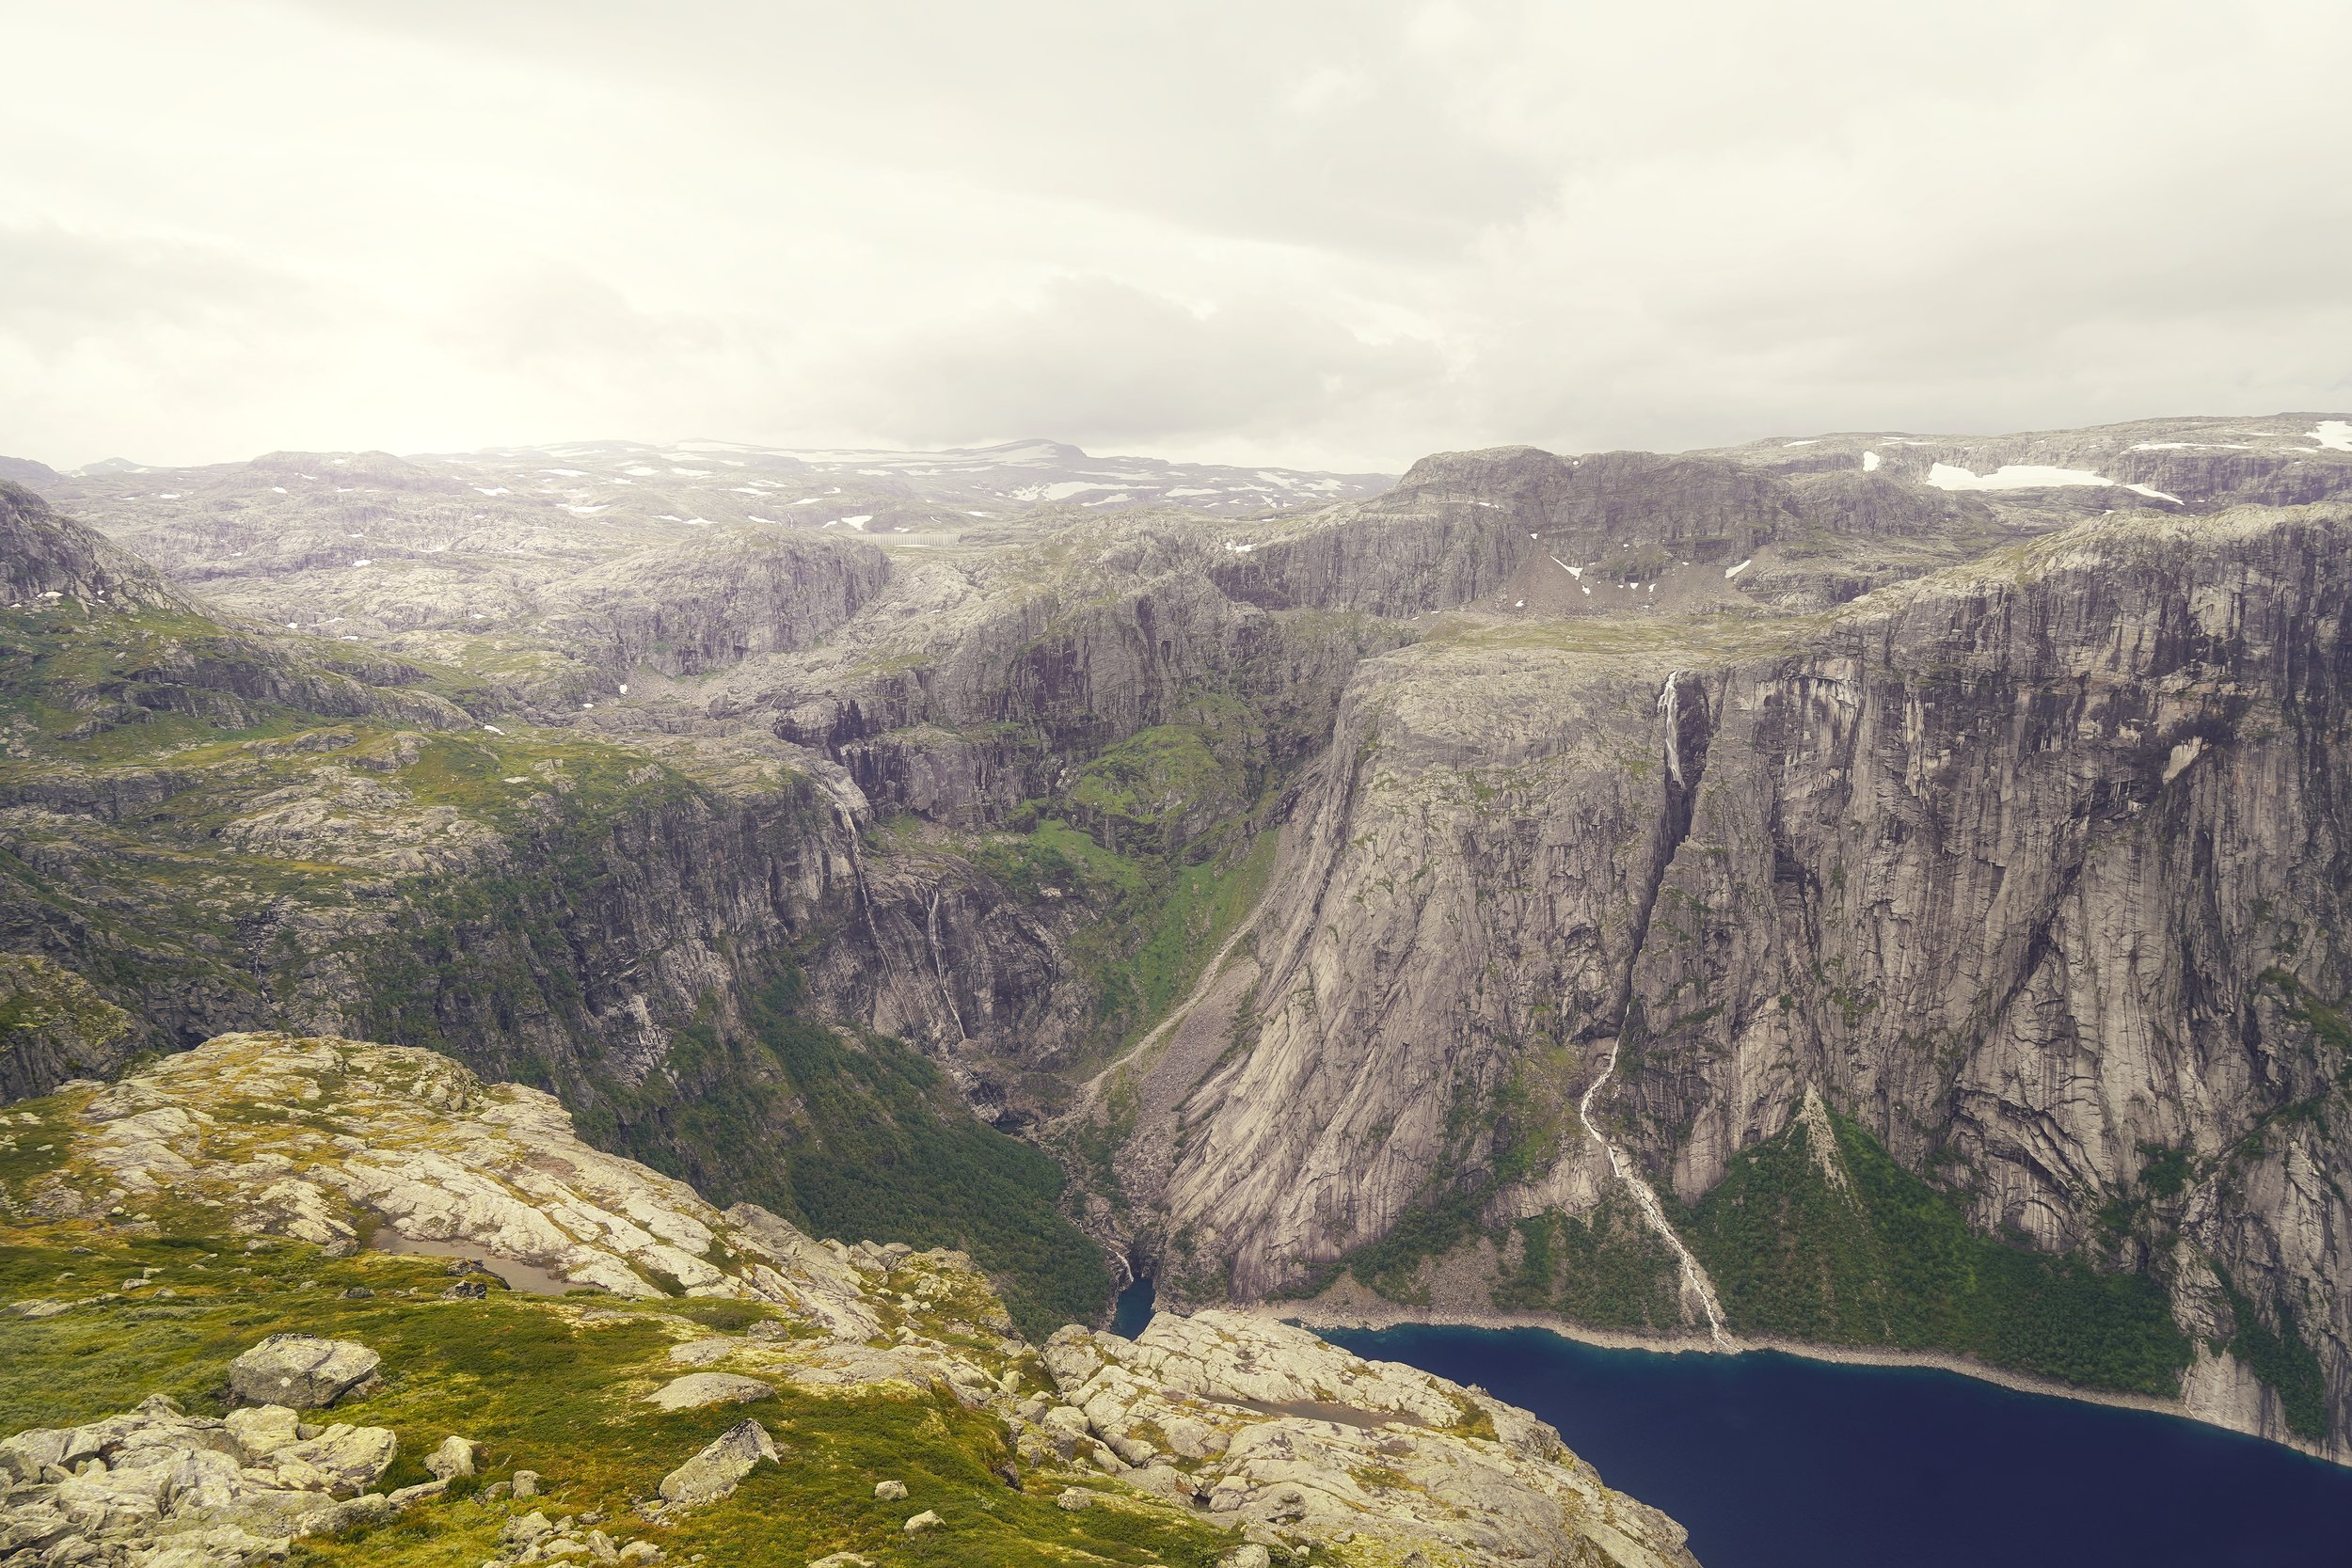 The area around Trolltunga is dominated by steep and wild mountains